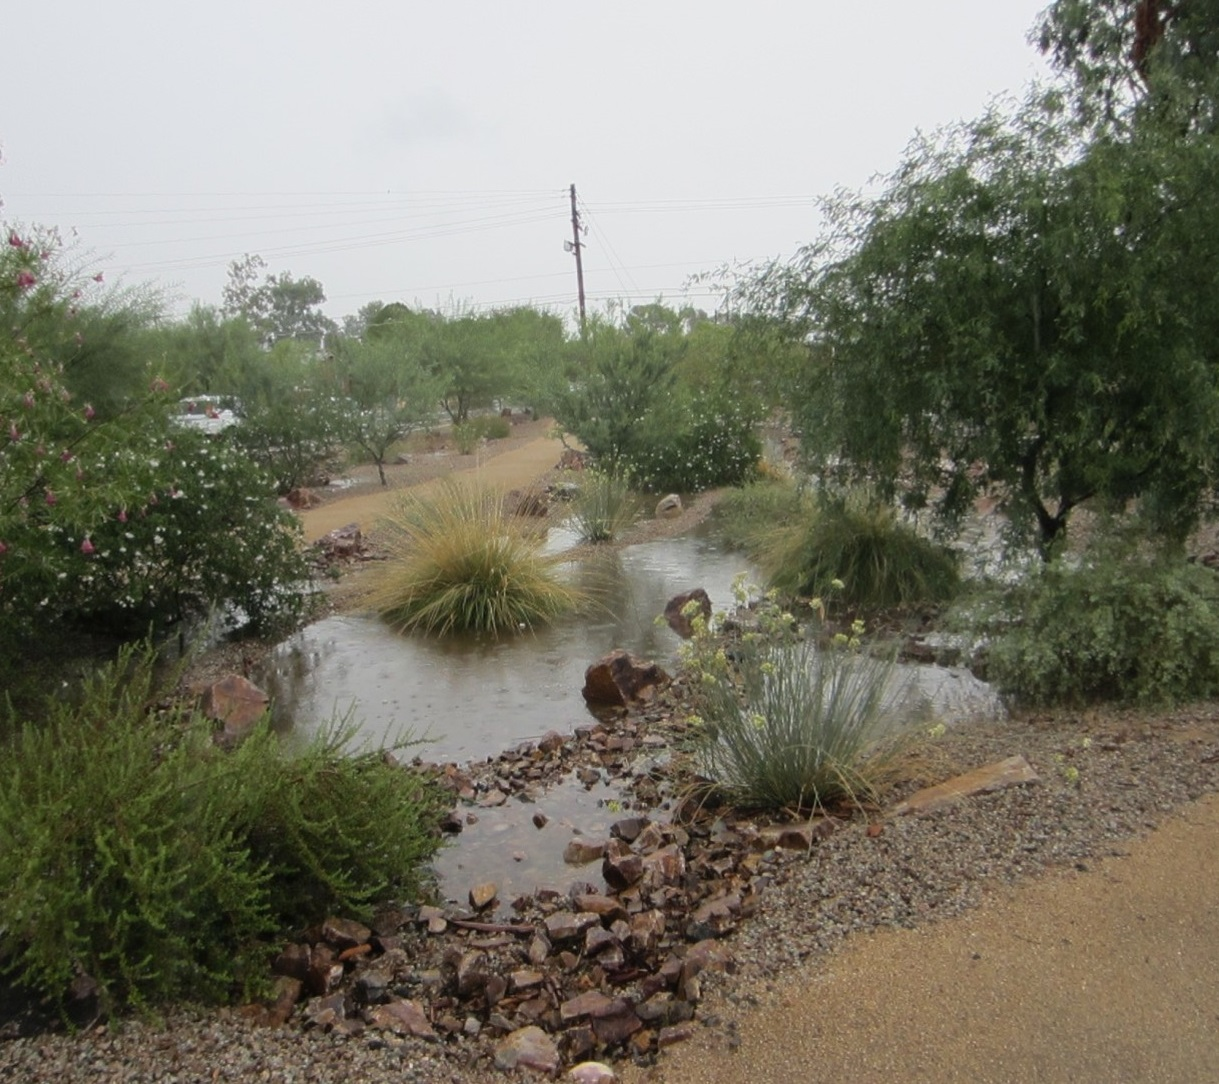 Basins collect rainfall runoff in a landscape along Lester Street.